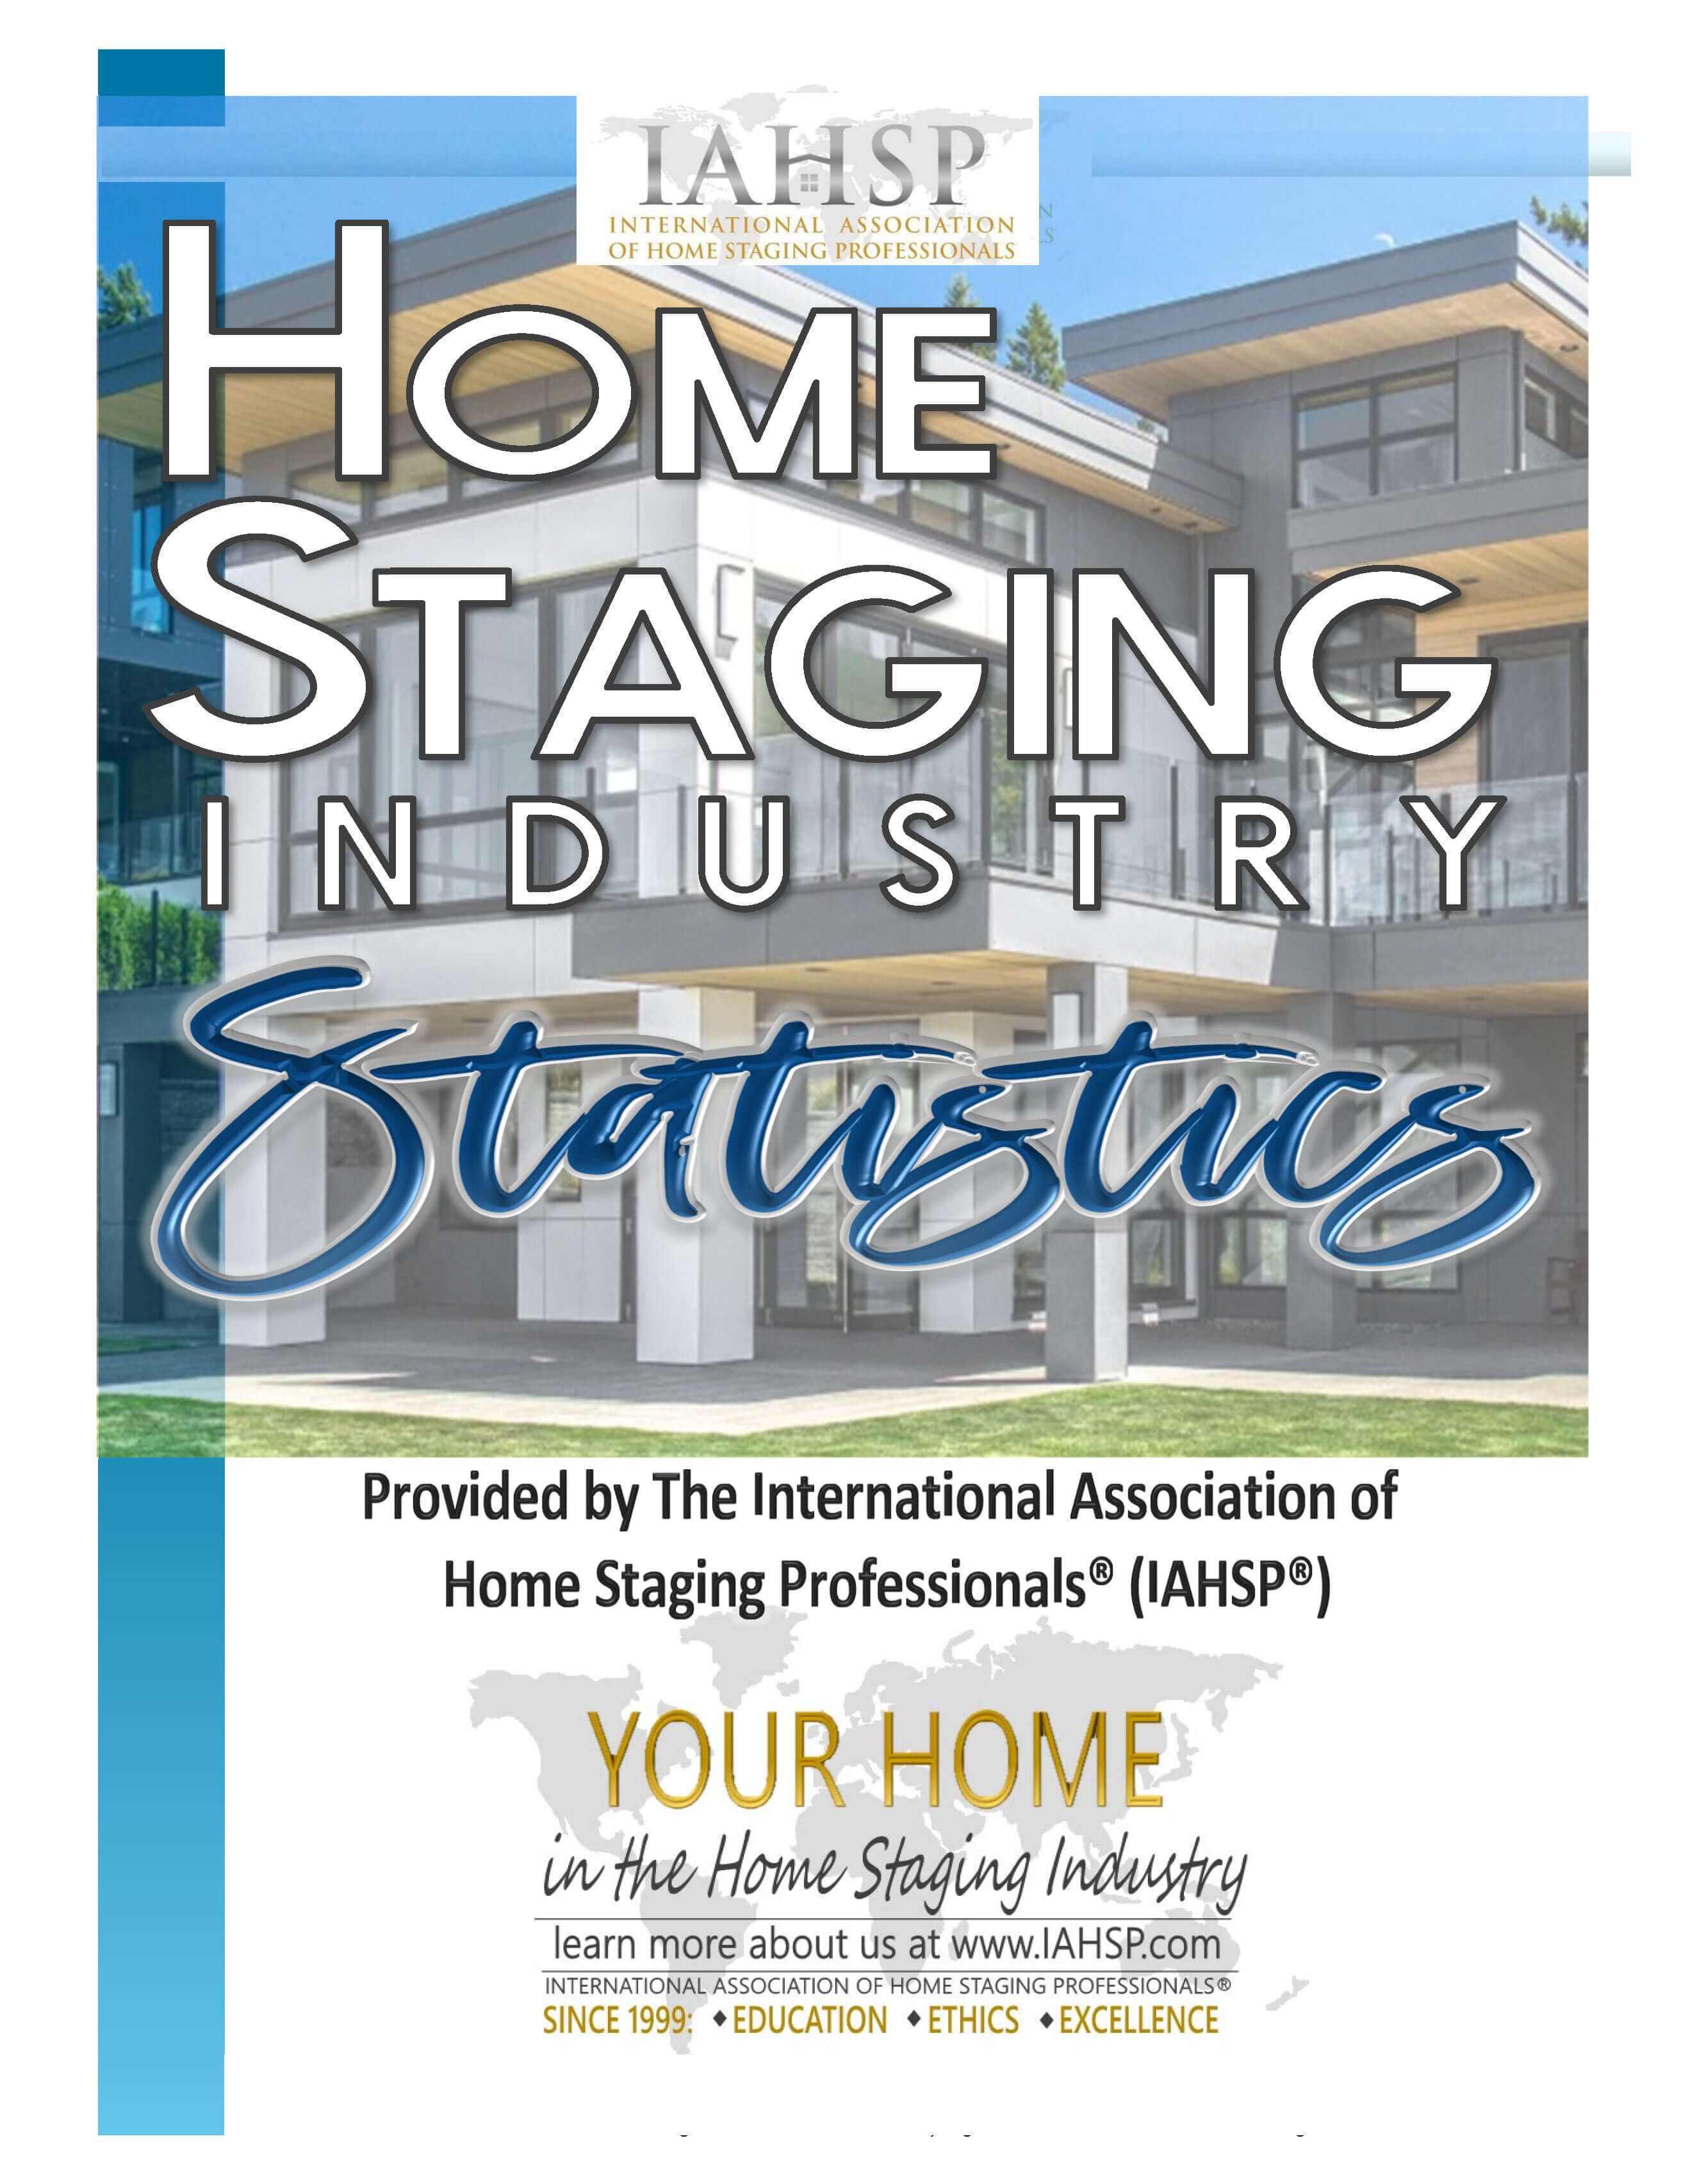 Home Staging Industry Statistics 2020